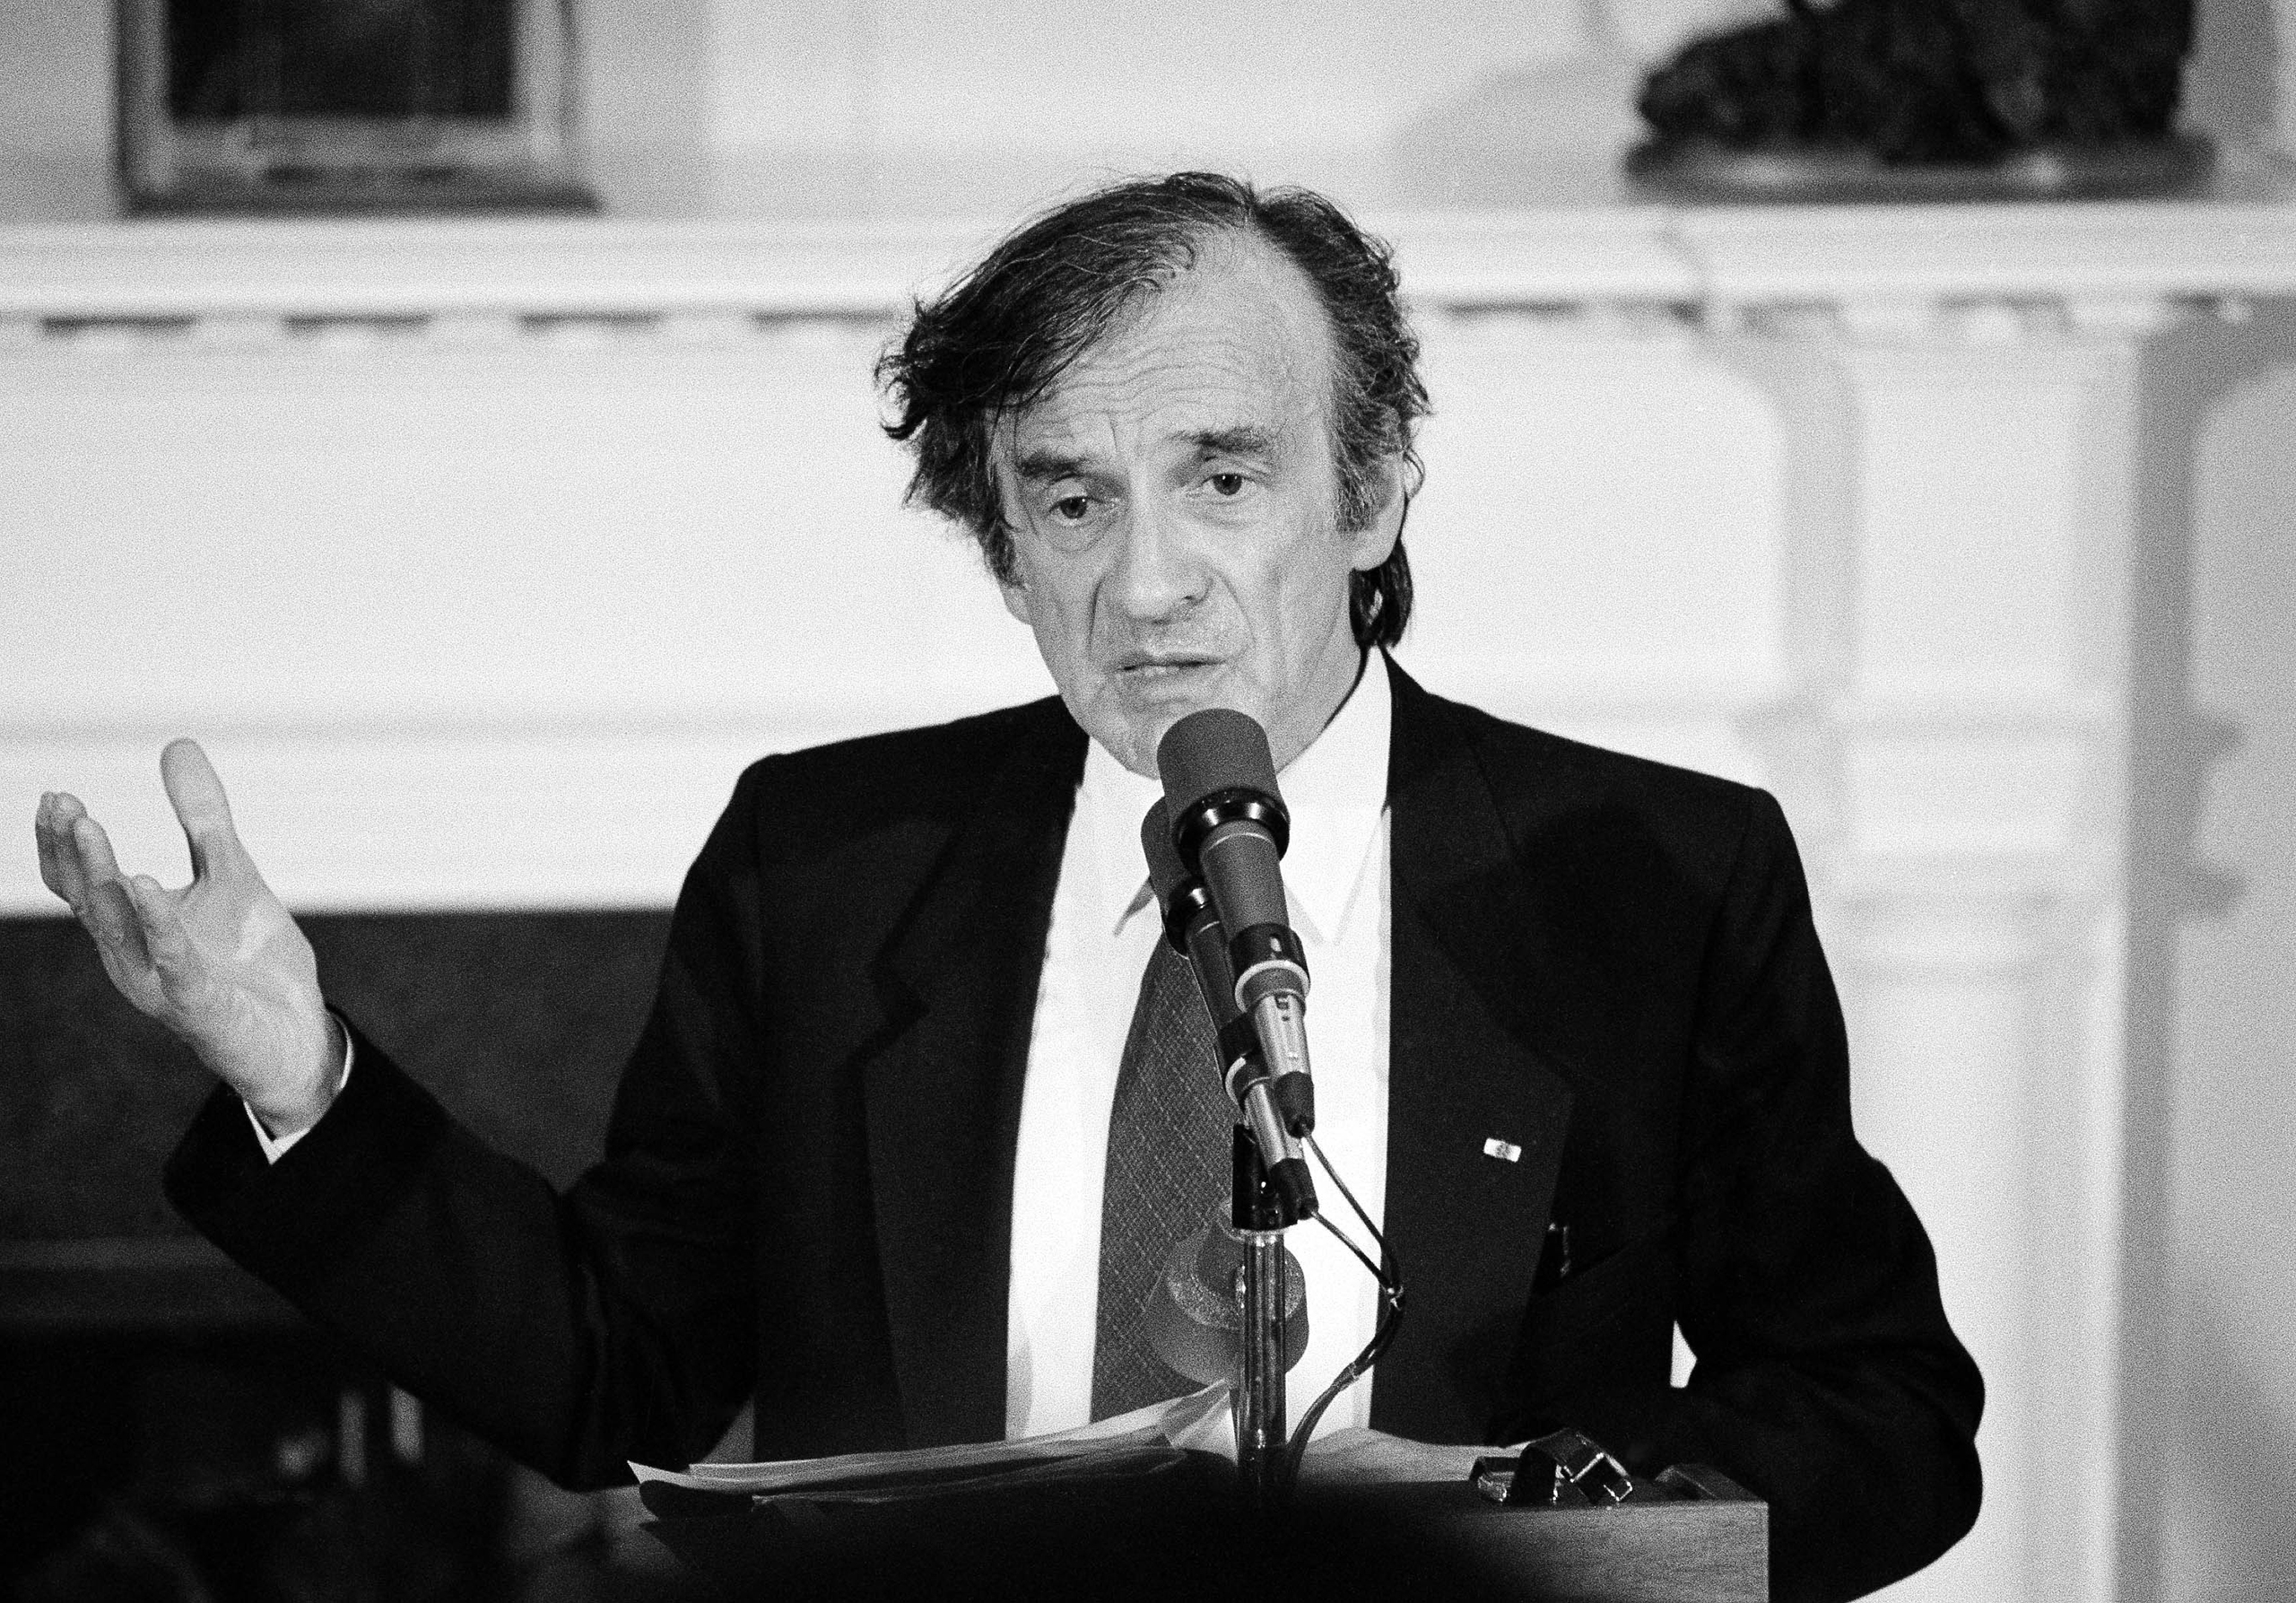 Holocaust survivor Elie Wiesel gestures while talking during a White House ceremony when President Ronald Reagan presented him with the Congressional Gold Medal on April 20, 1985.